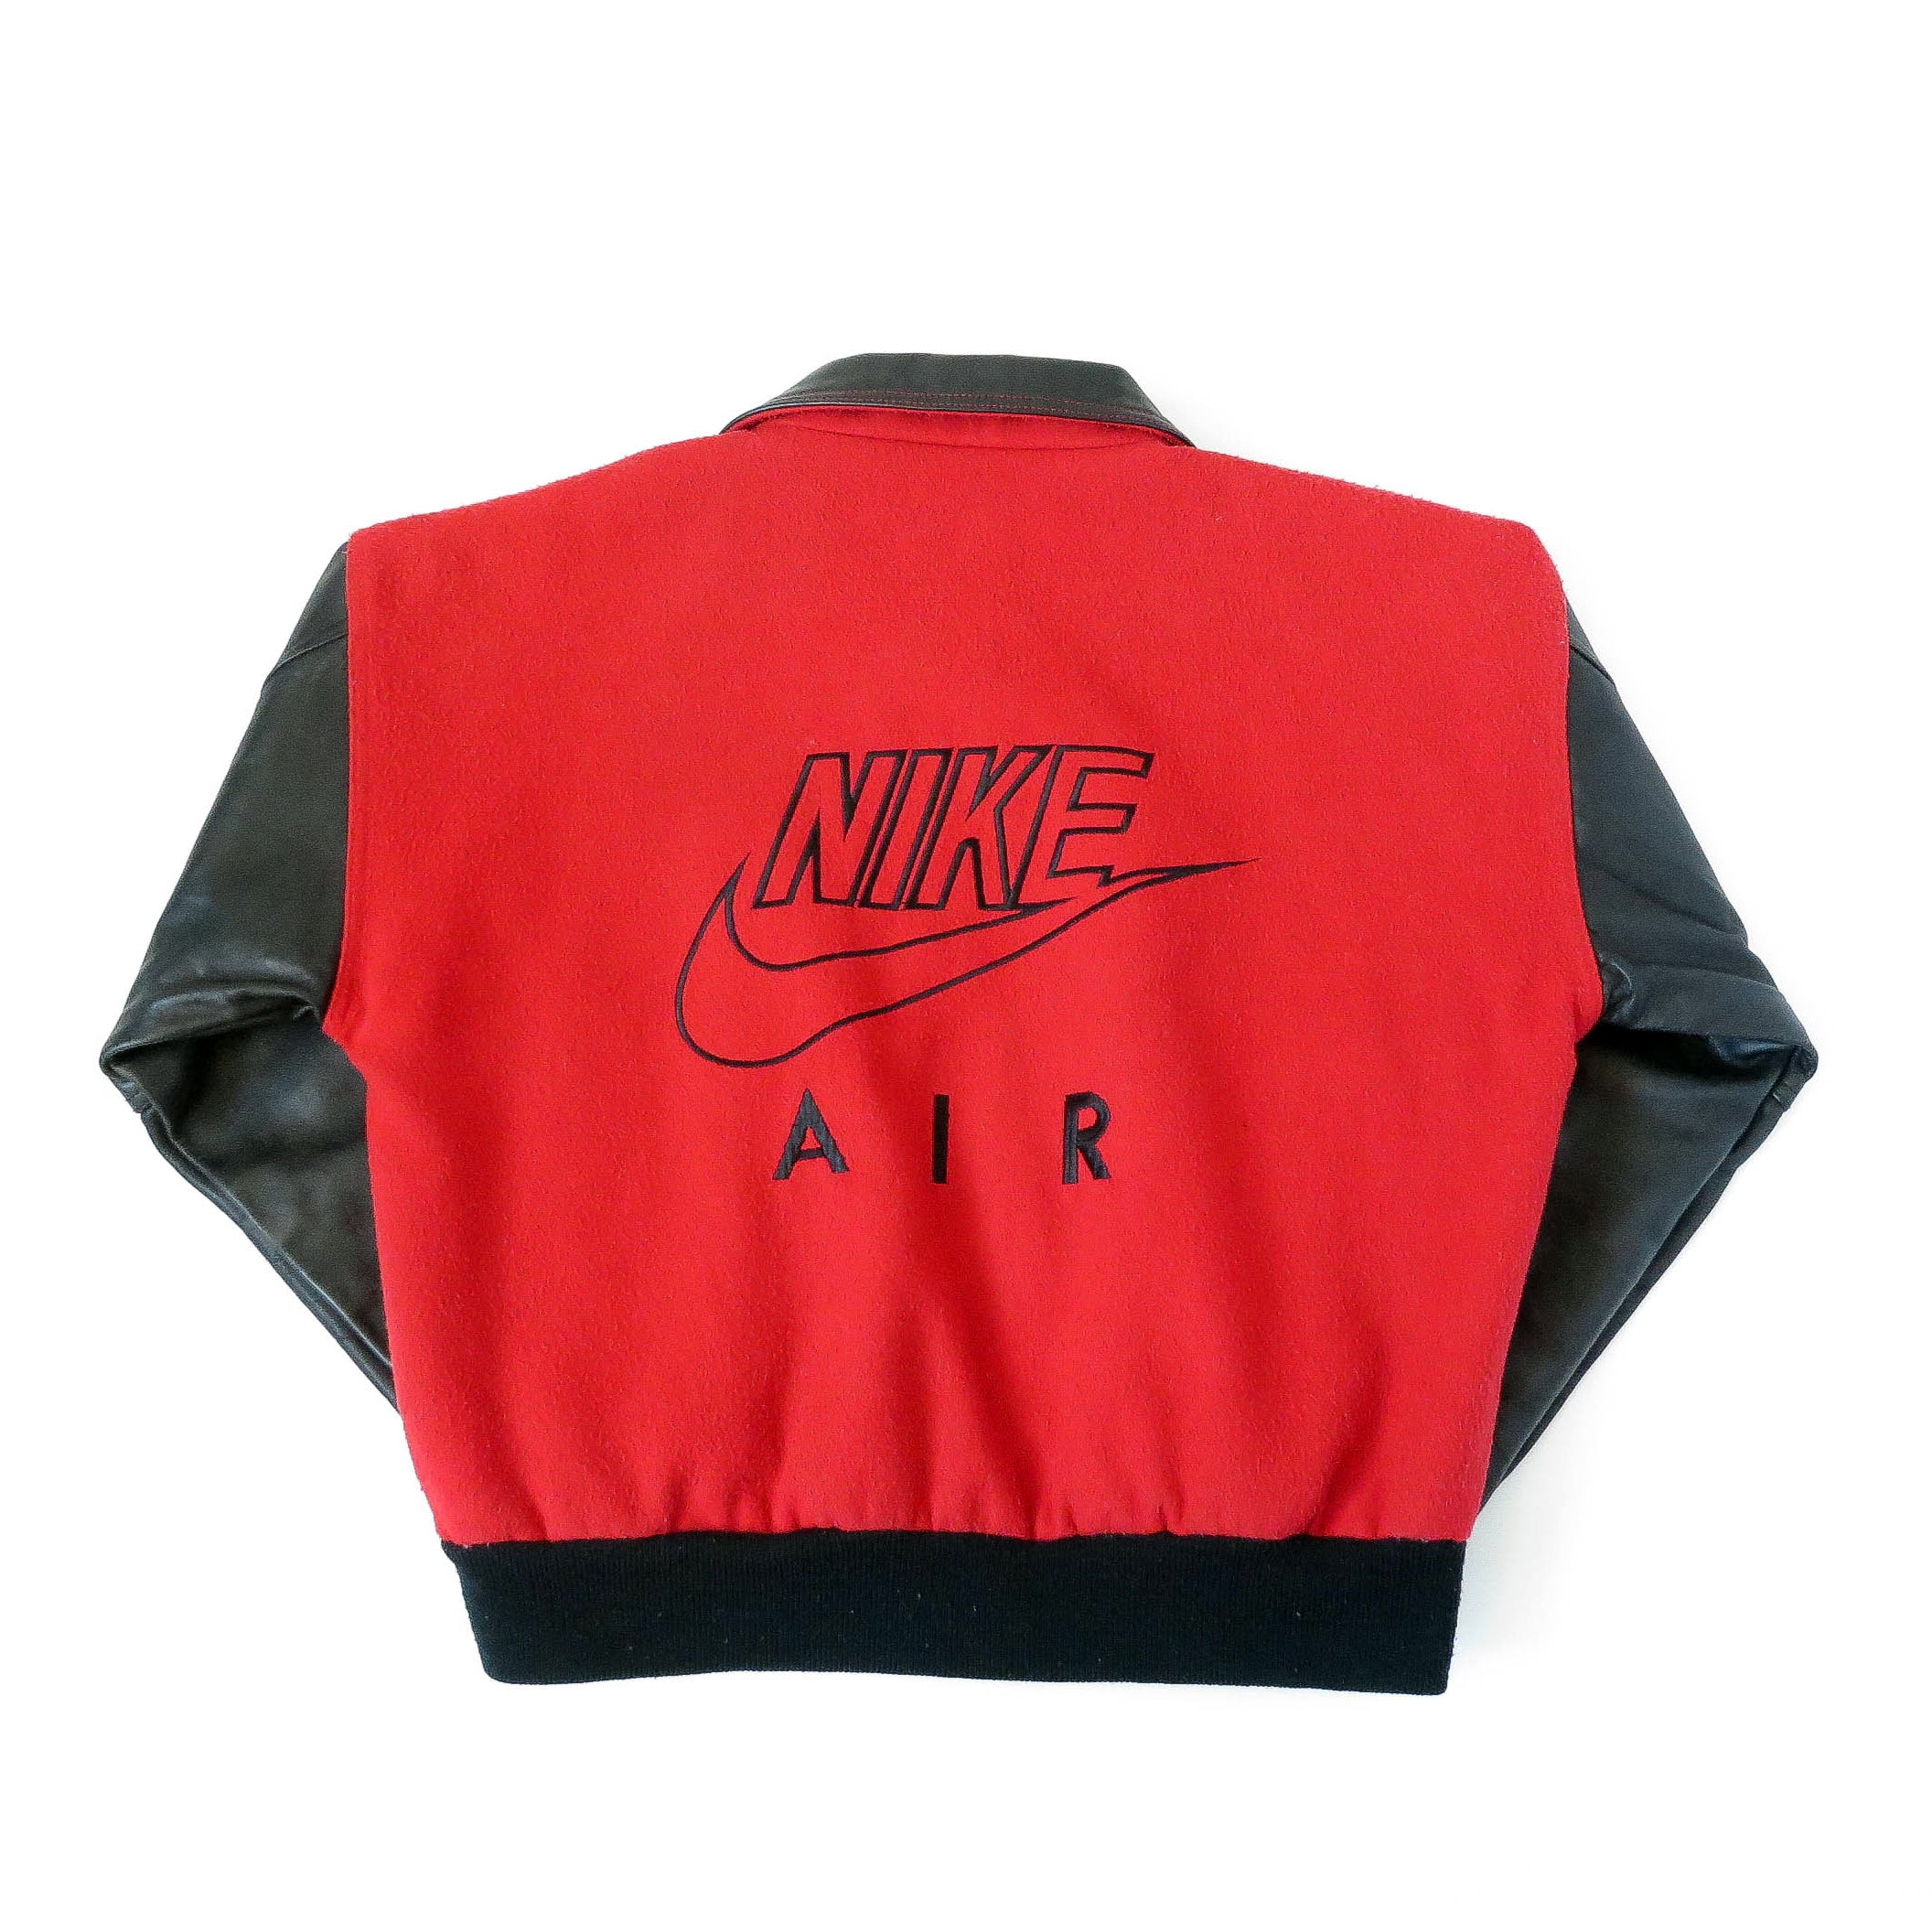 Vintage Nike Air Letterman Jacket Sz XL